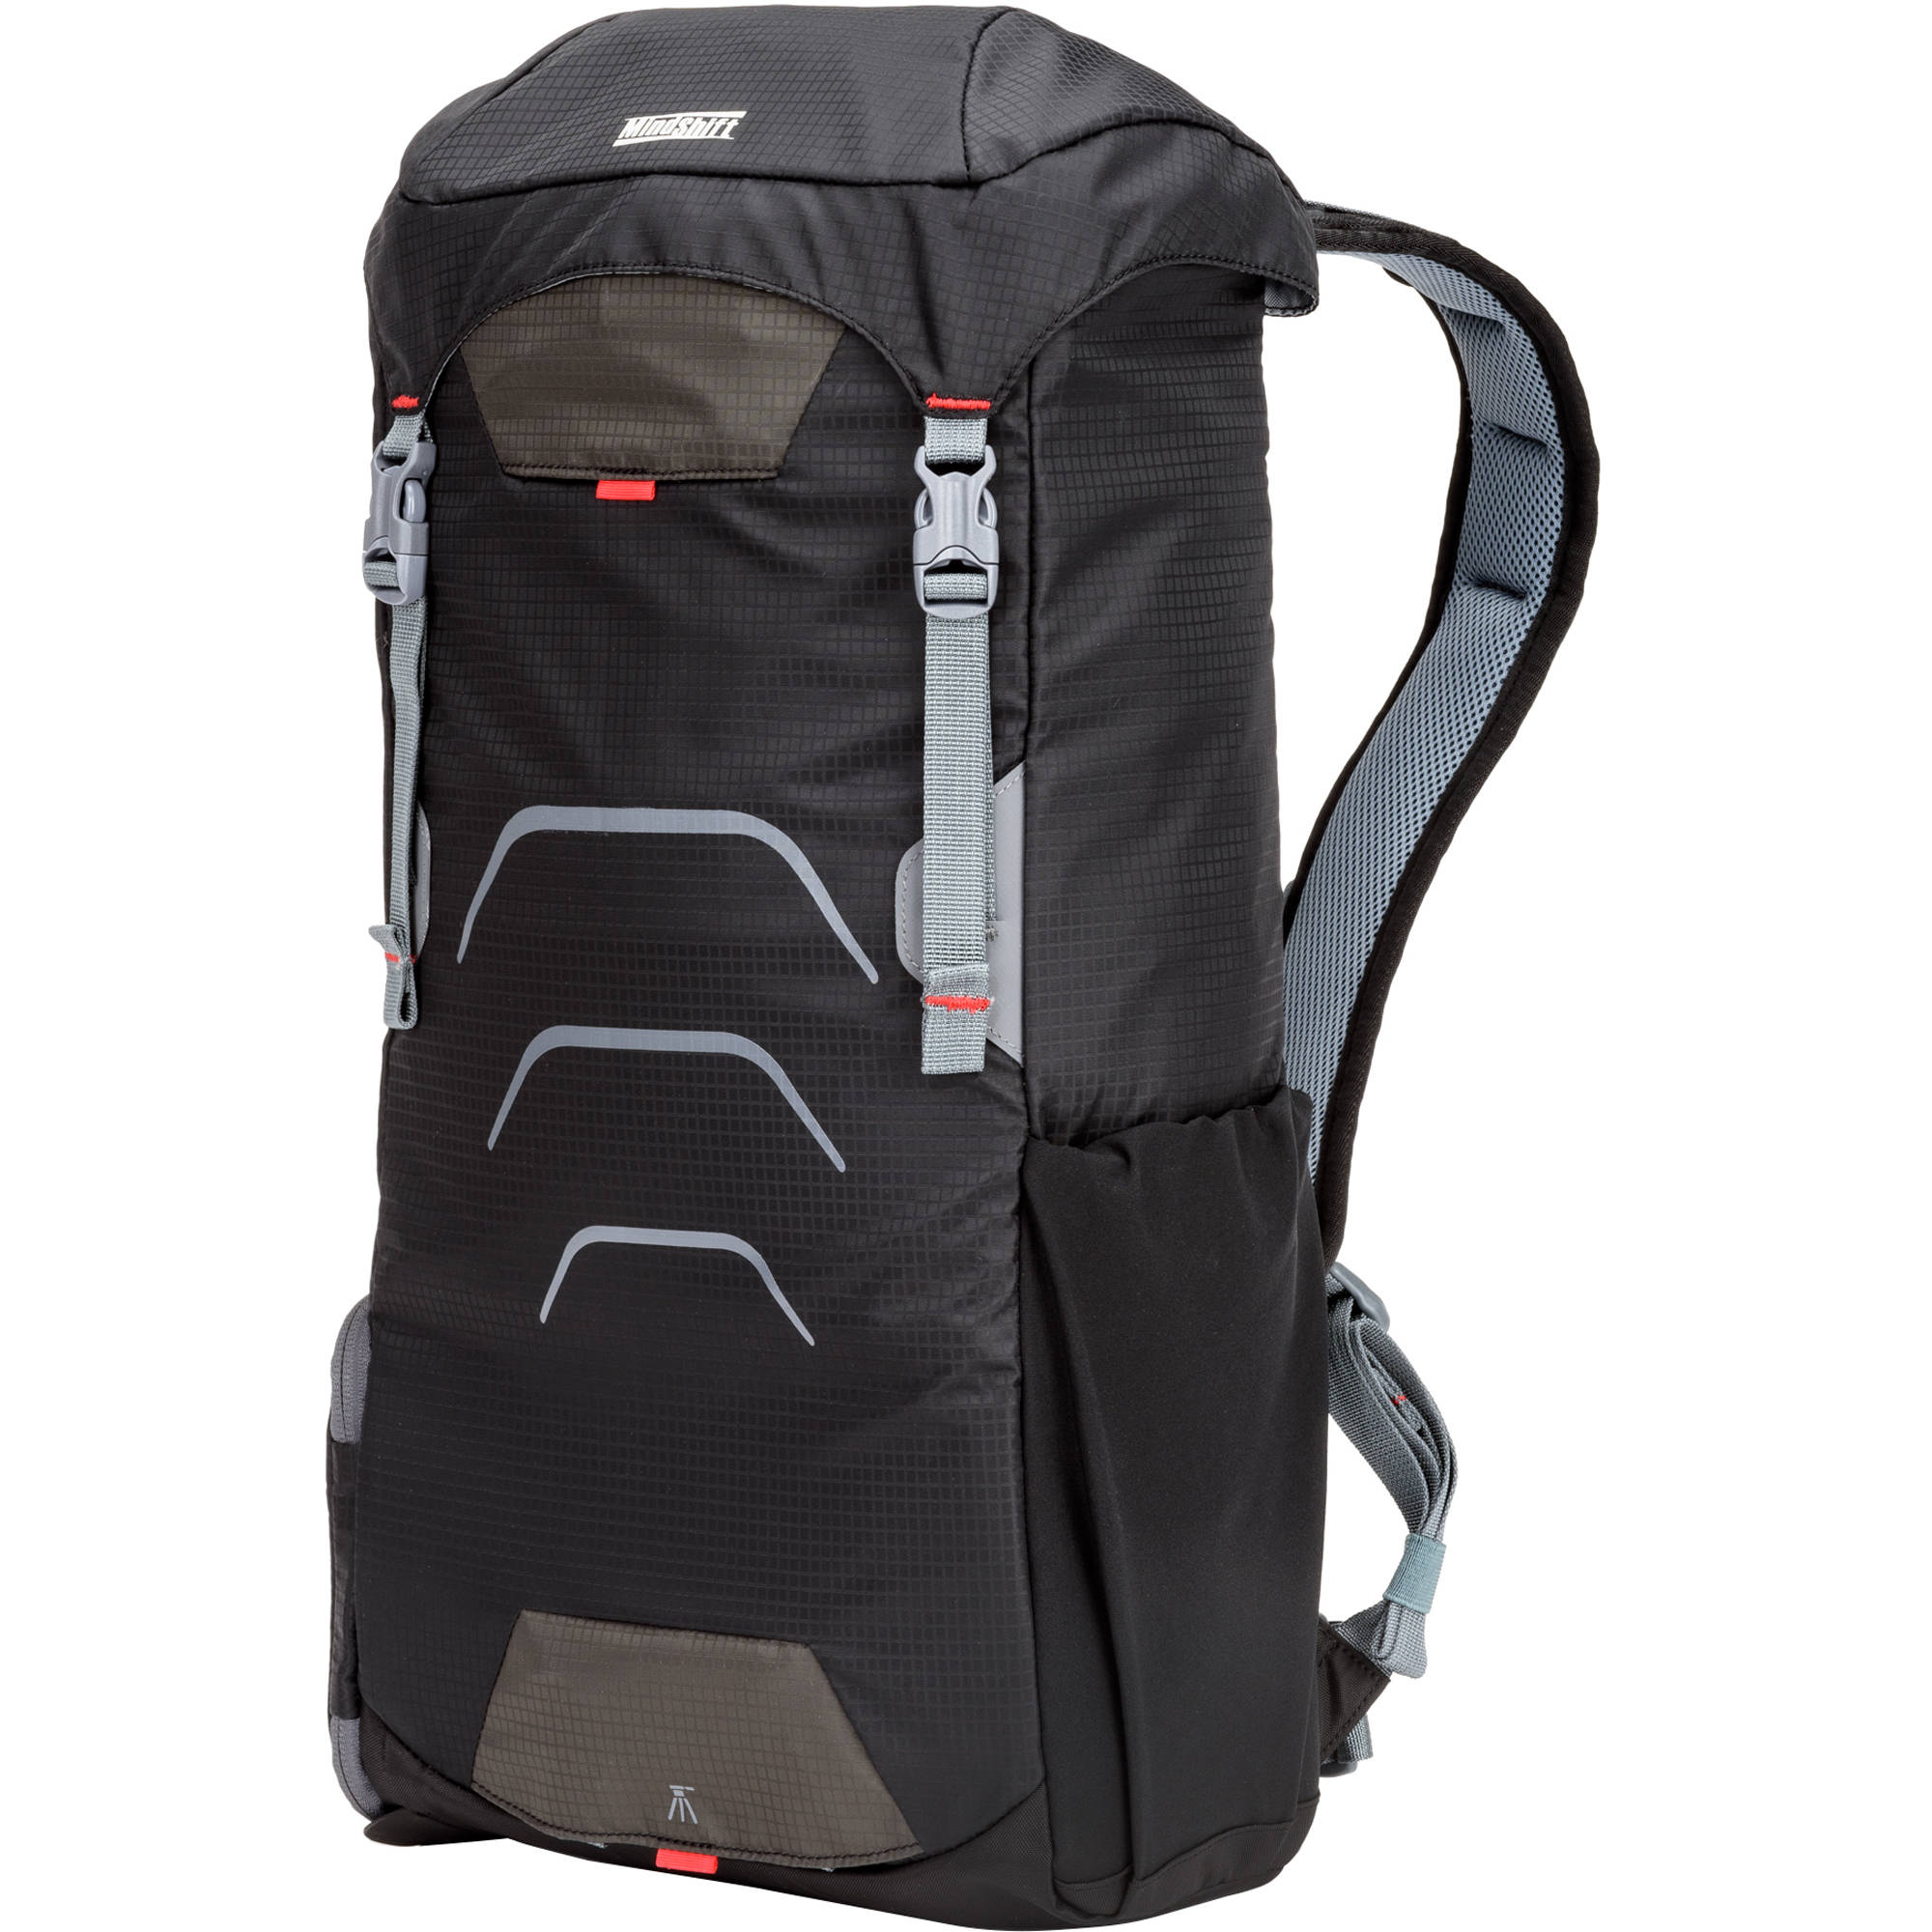 MindShift Gear UltraLight Sprint 16L Backpack Black Magma